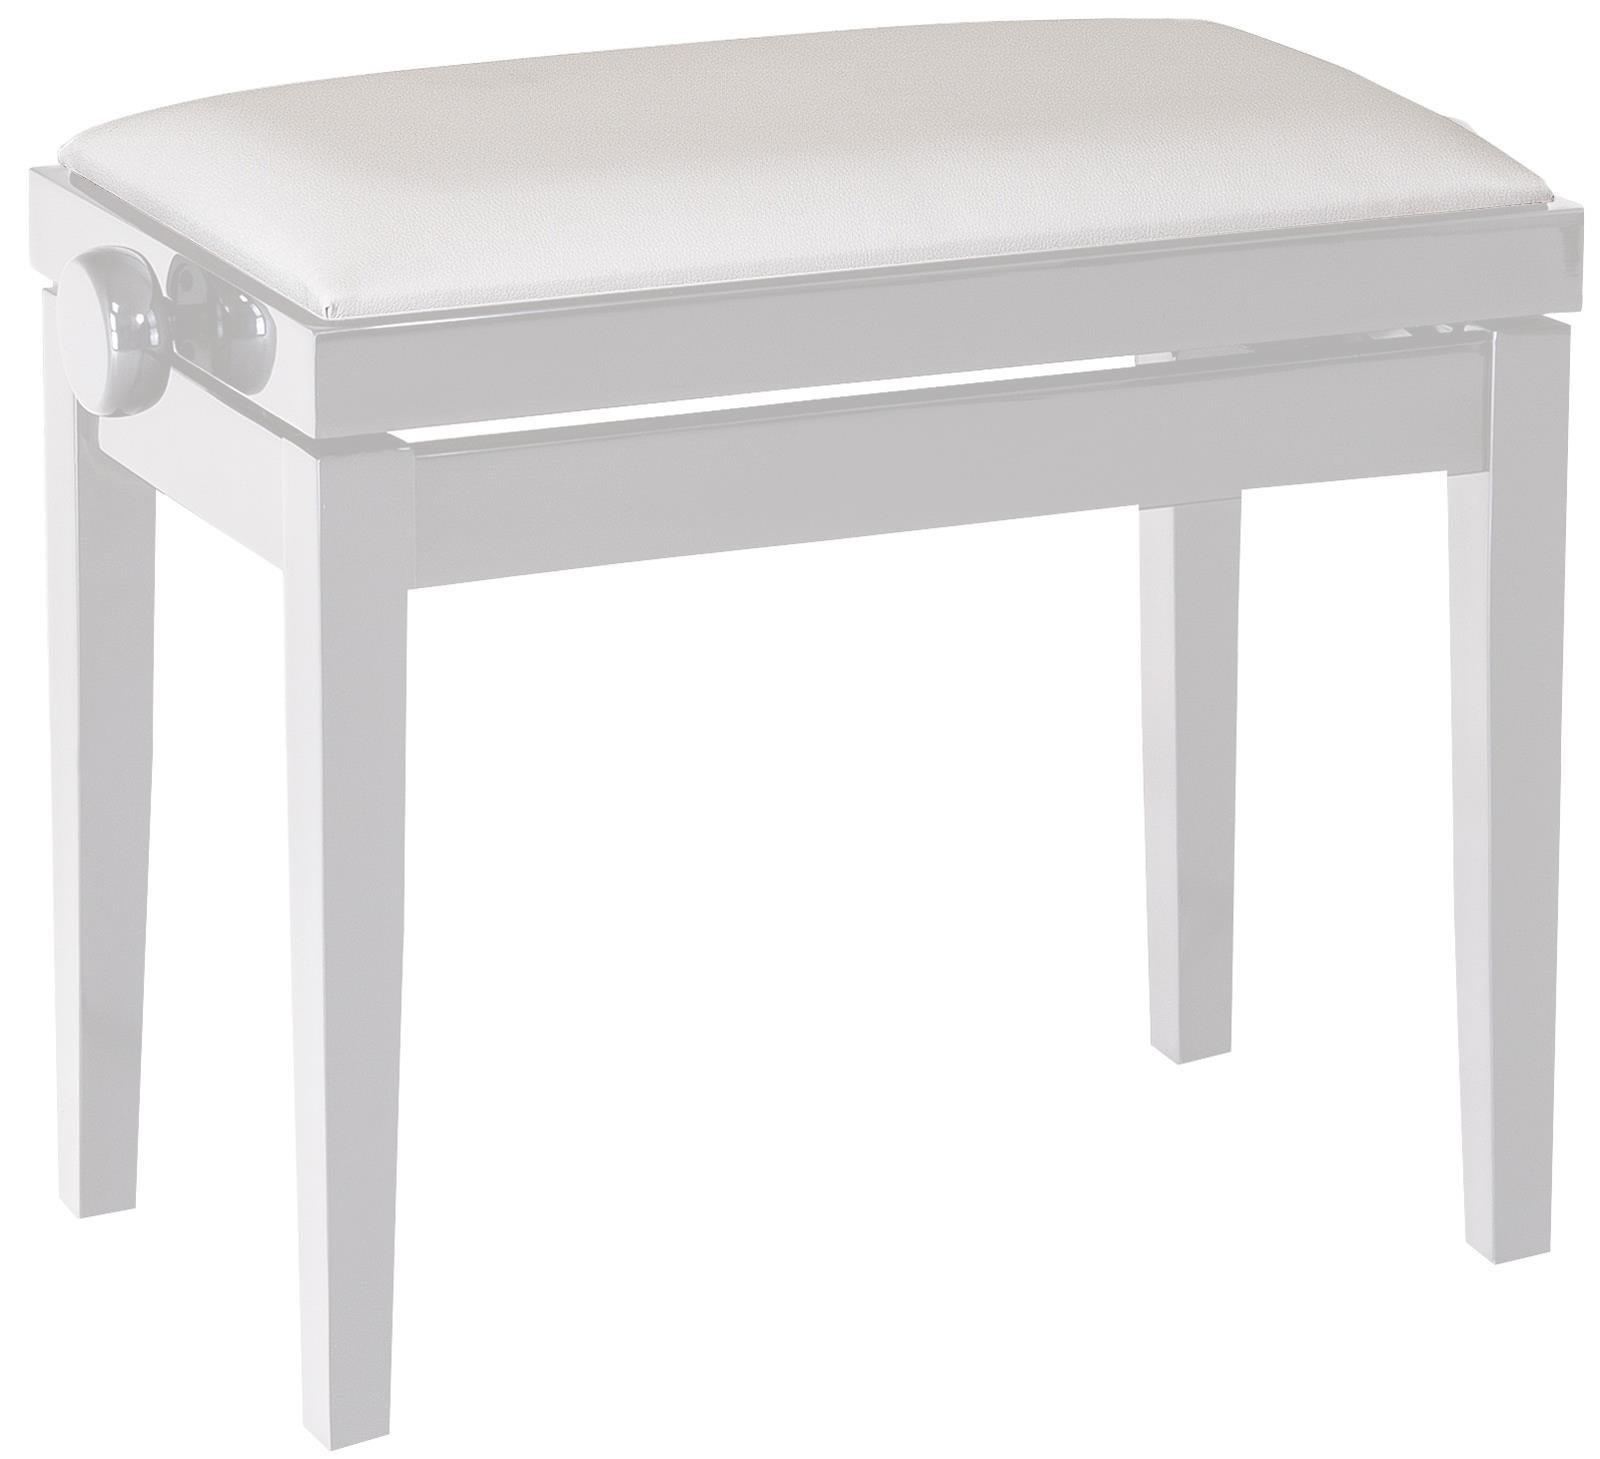 Konig Amp Meyer 13824 Piano Bench Seat Only Skai White